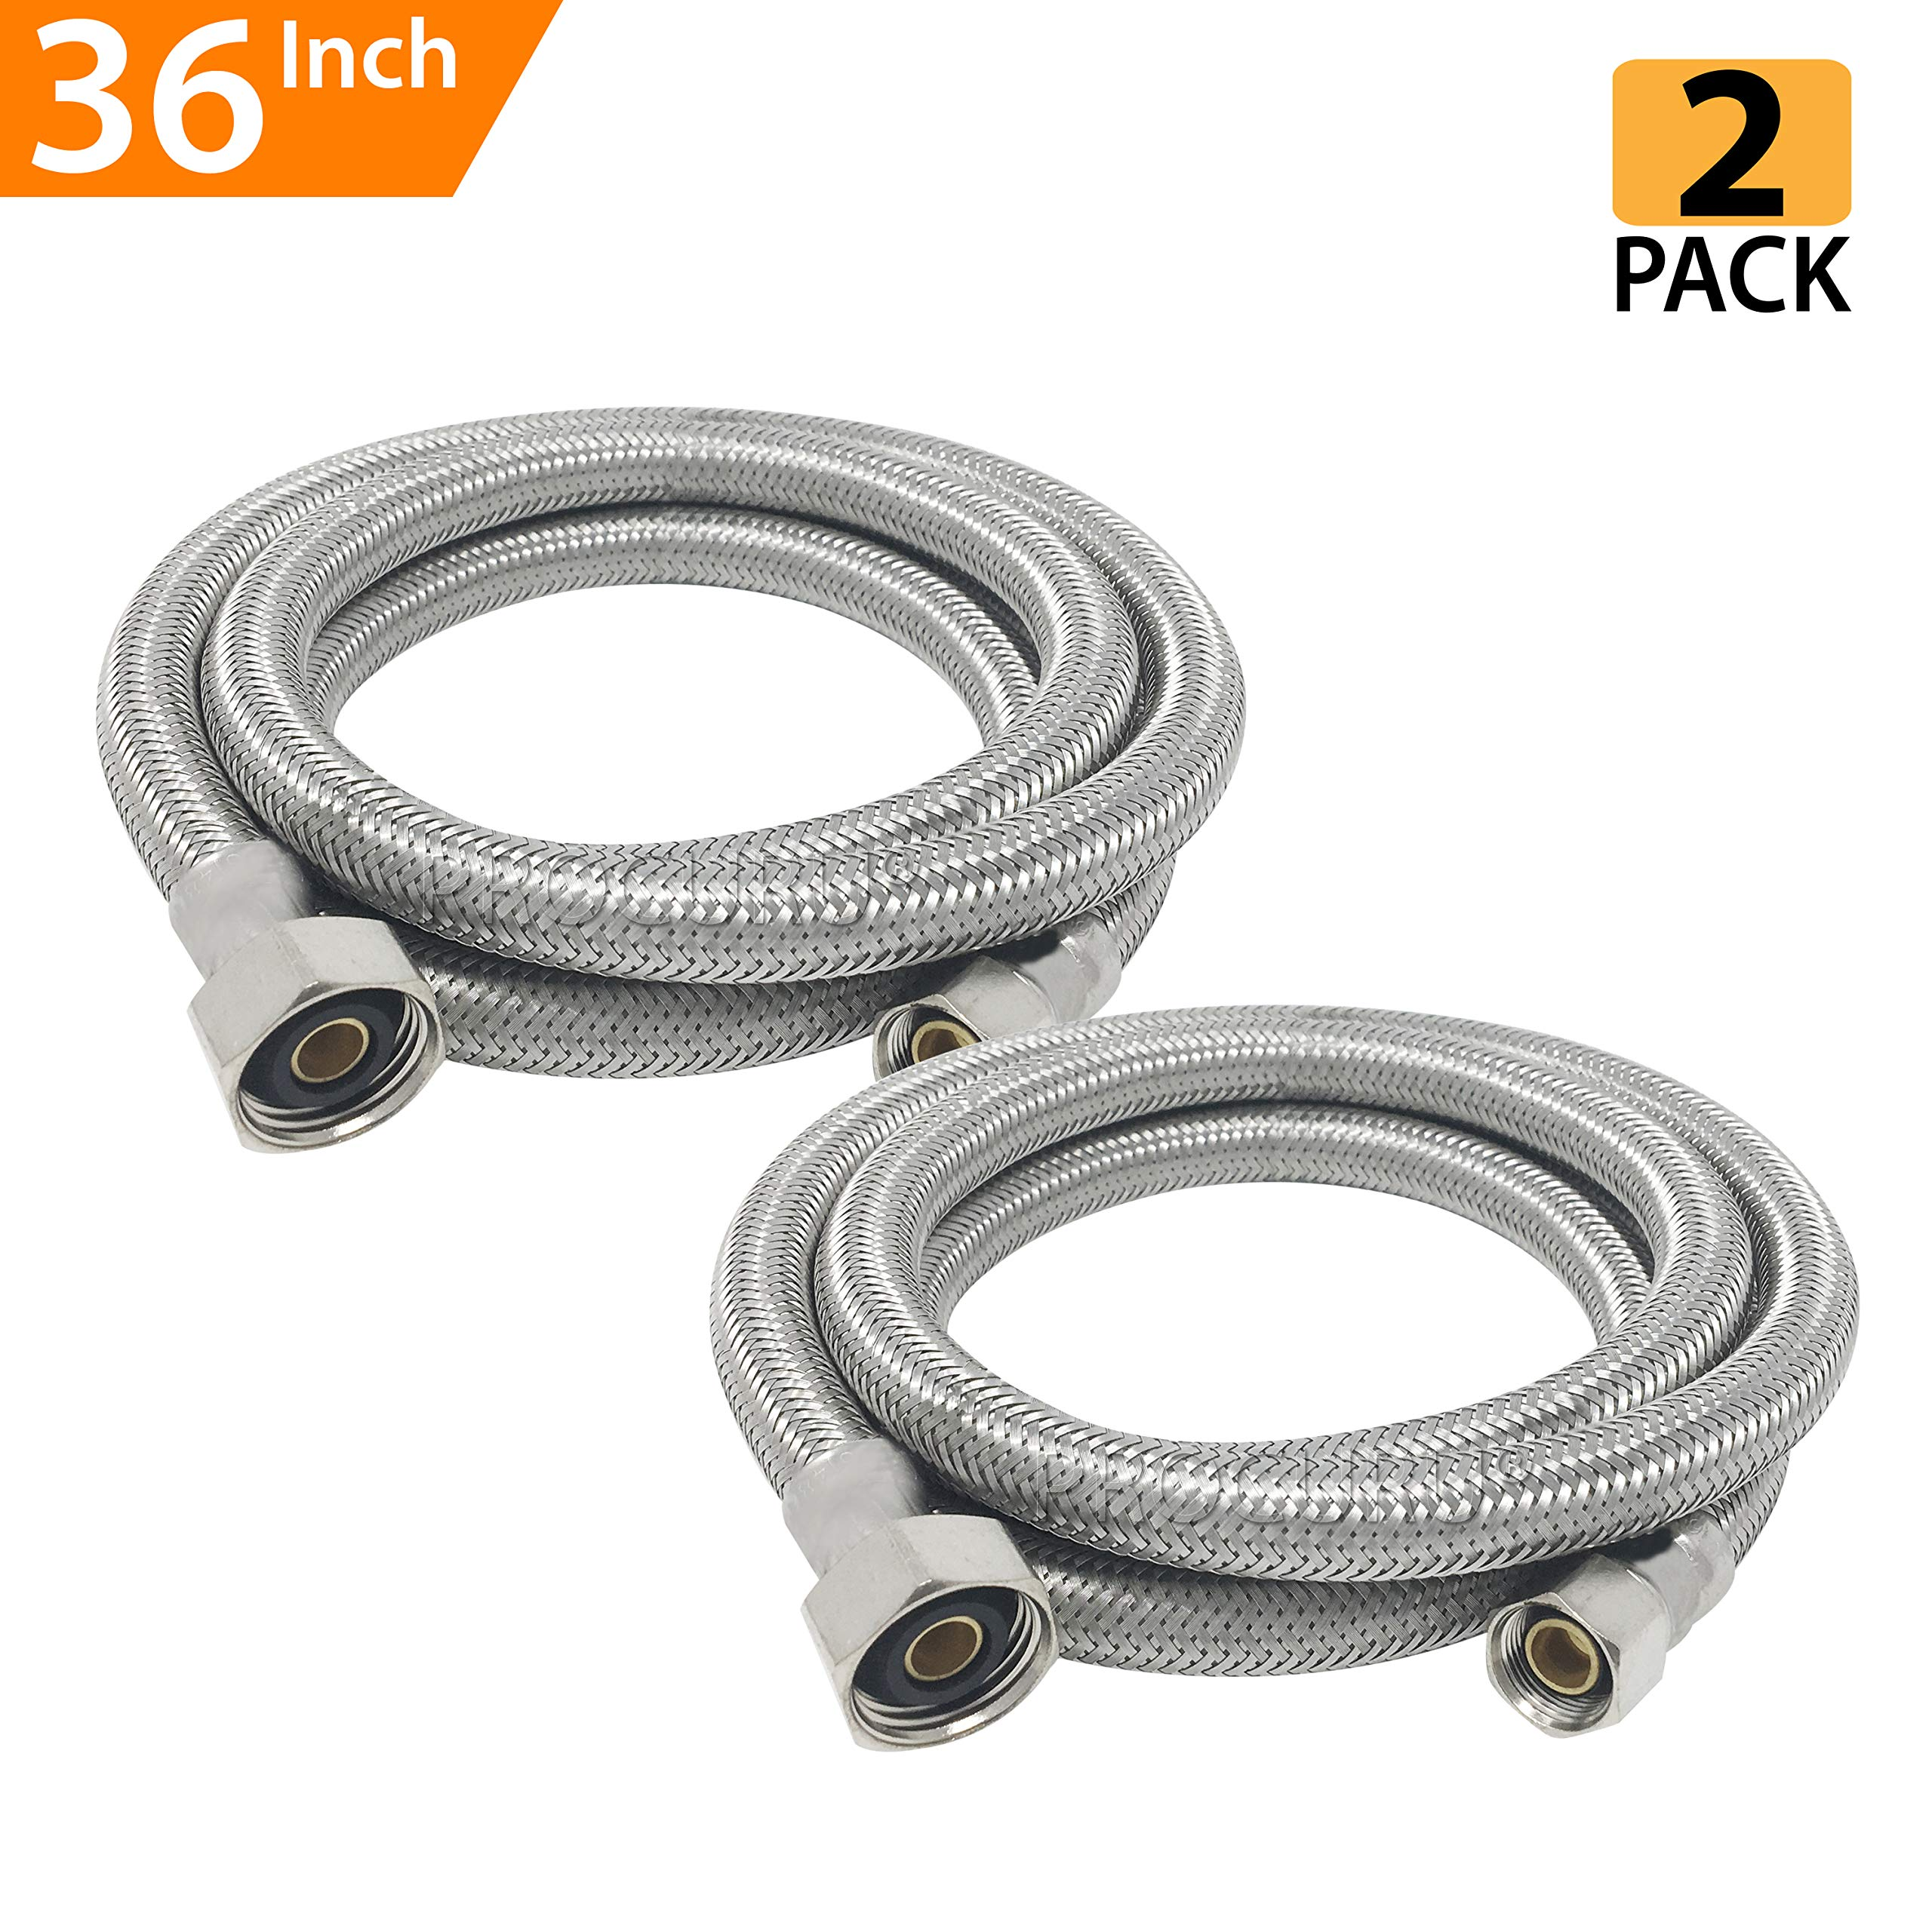 [2-Pack] PROCURU PCFC381236-2, Faucet Supply Connector, 36'' Length Braided Stainless Steel, 3/8-Inch Female Compression x 1/2-Inch FIP, 2-Pack (36-Inch)